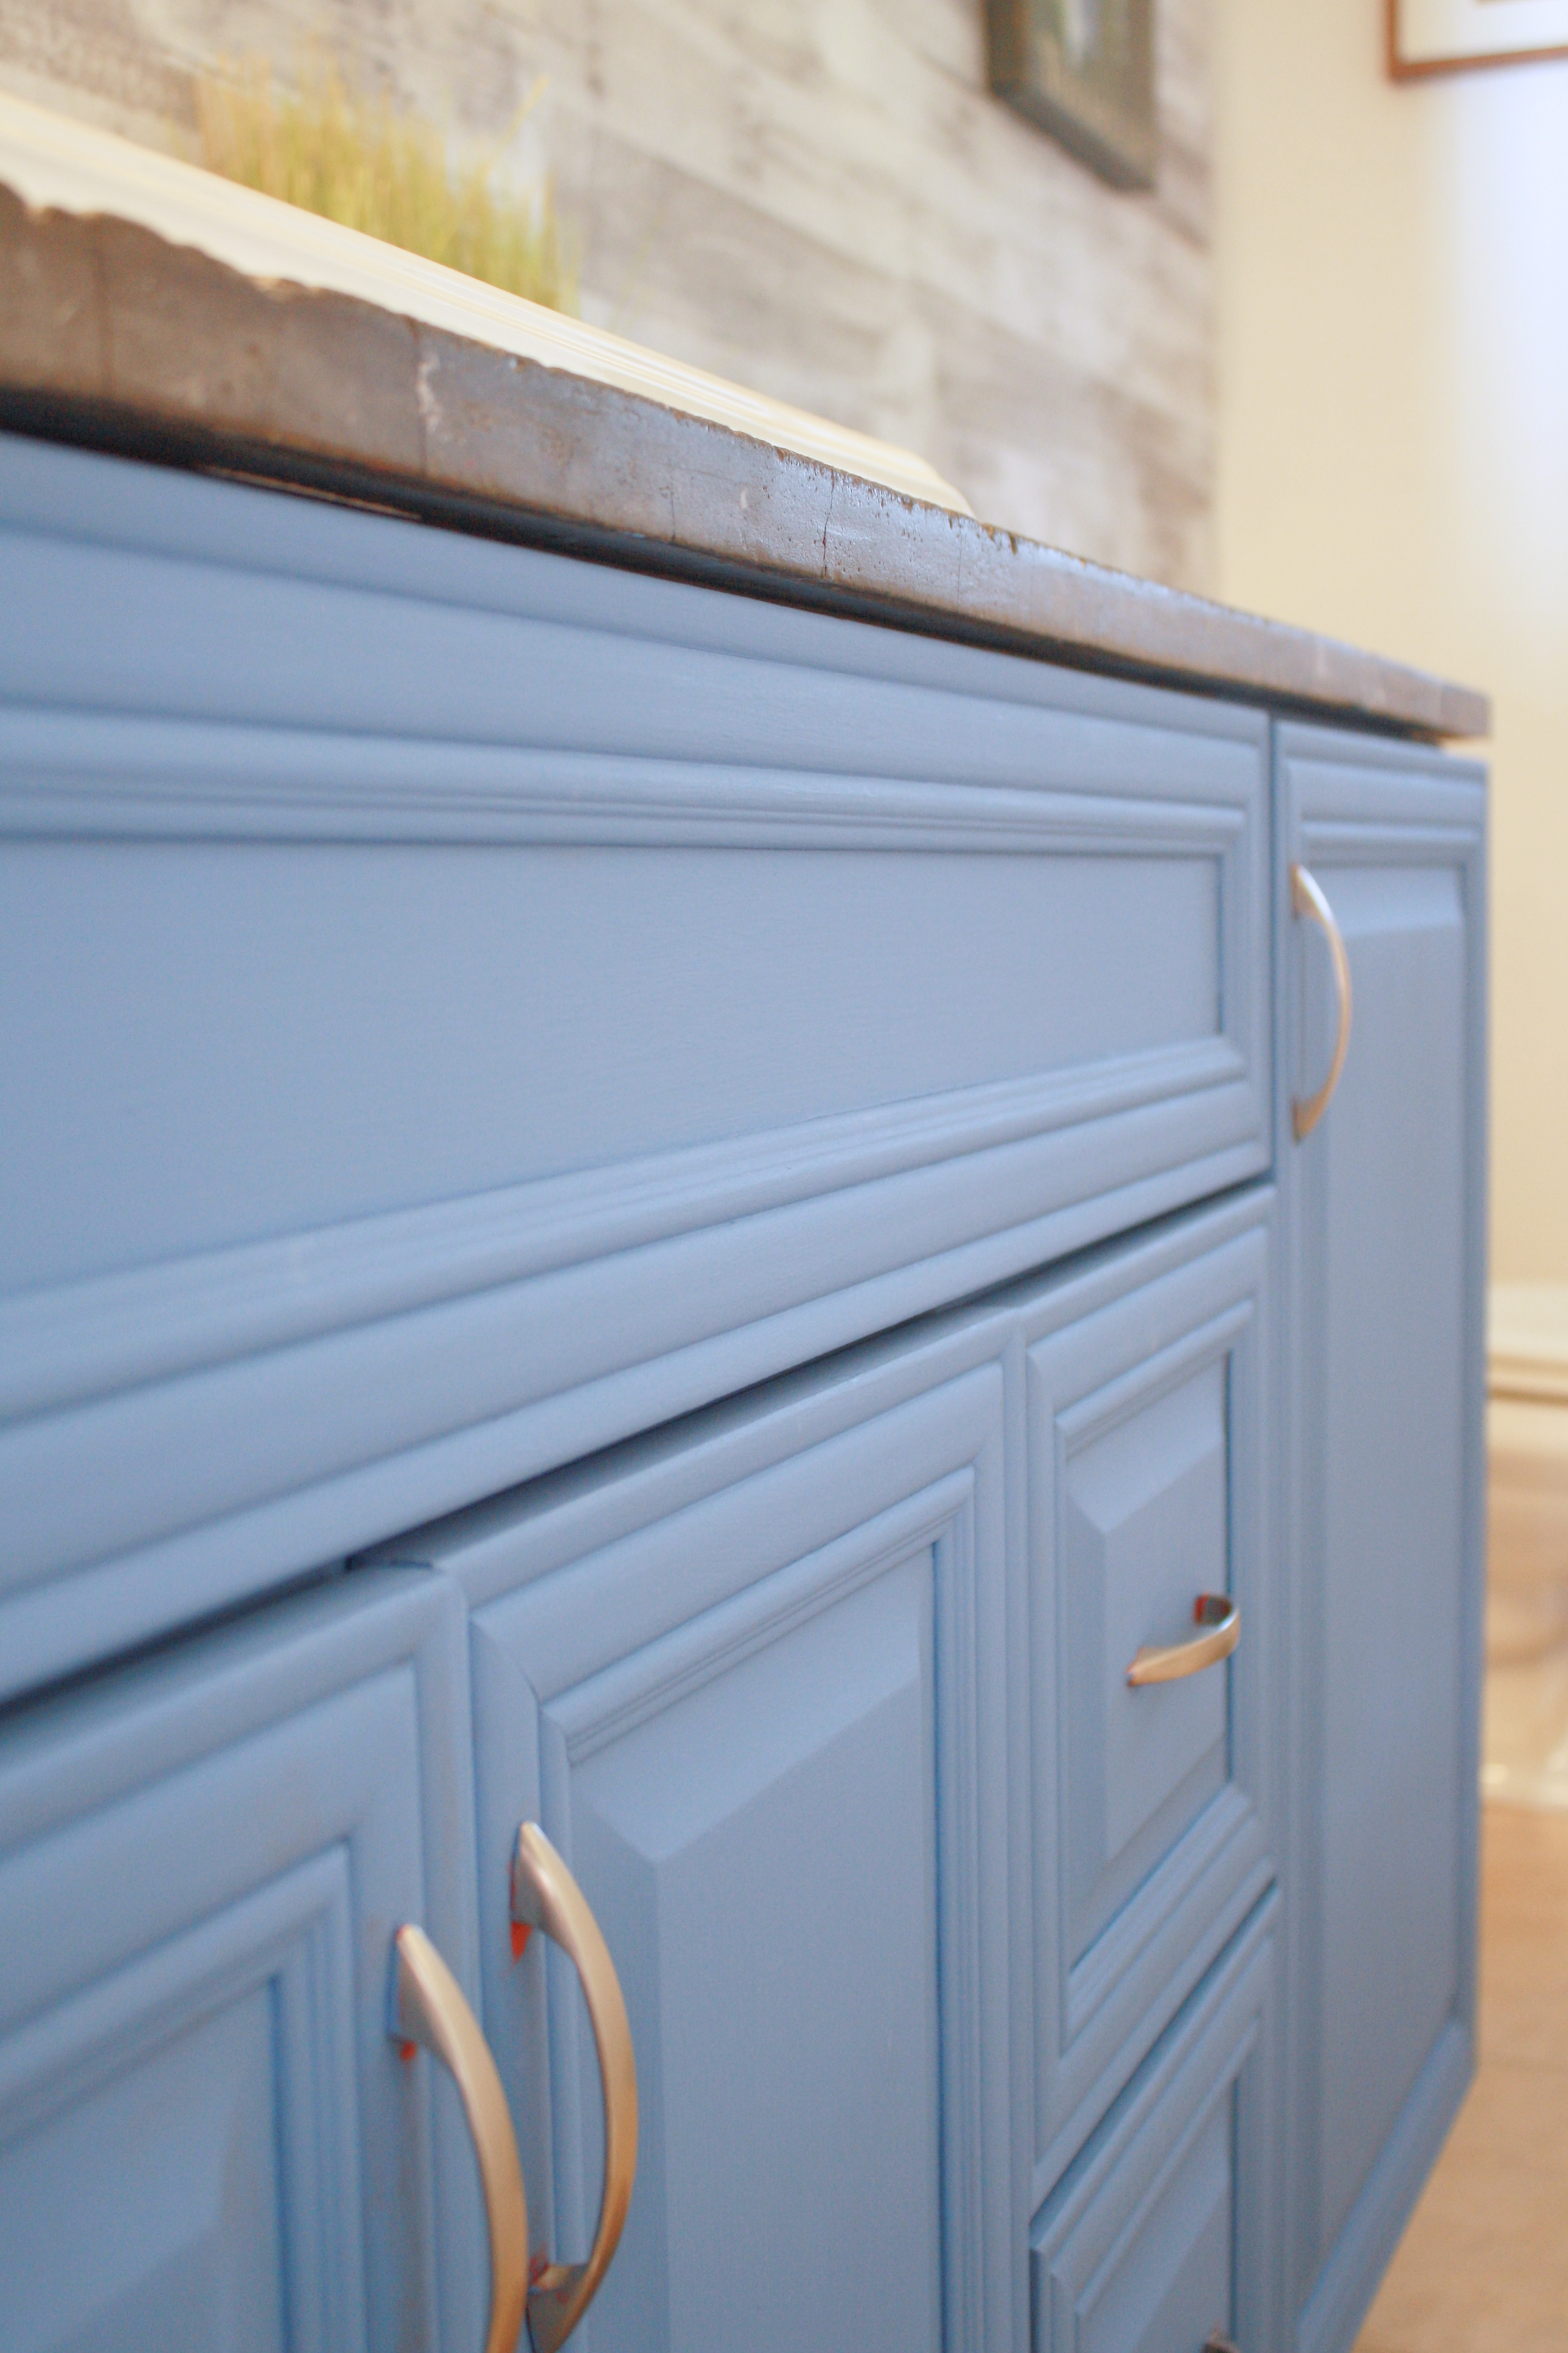 Blog Archive Bathroom Refresh With Chalk Paint By Annie Sloan